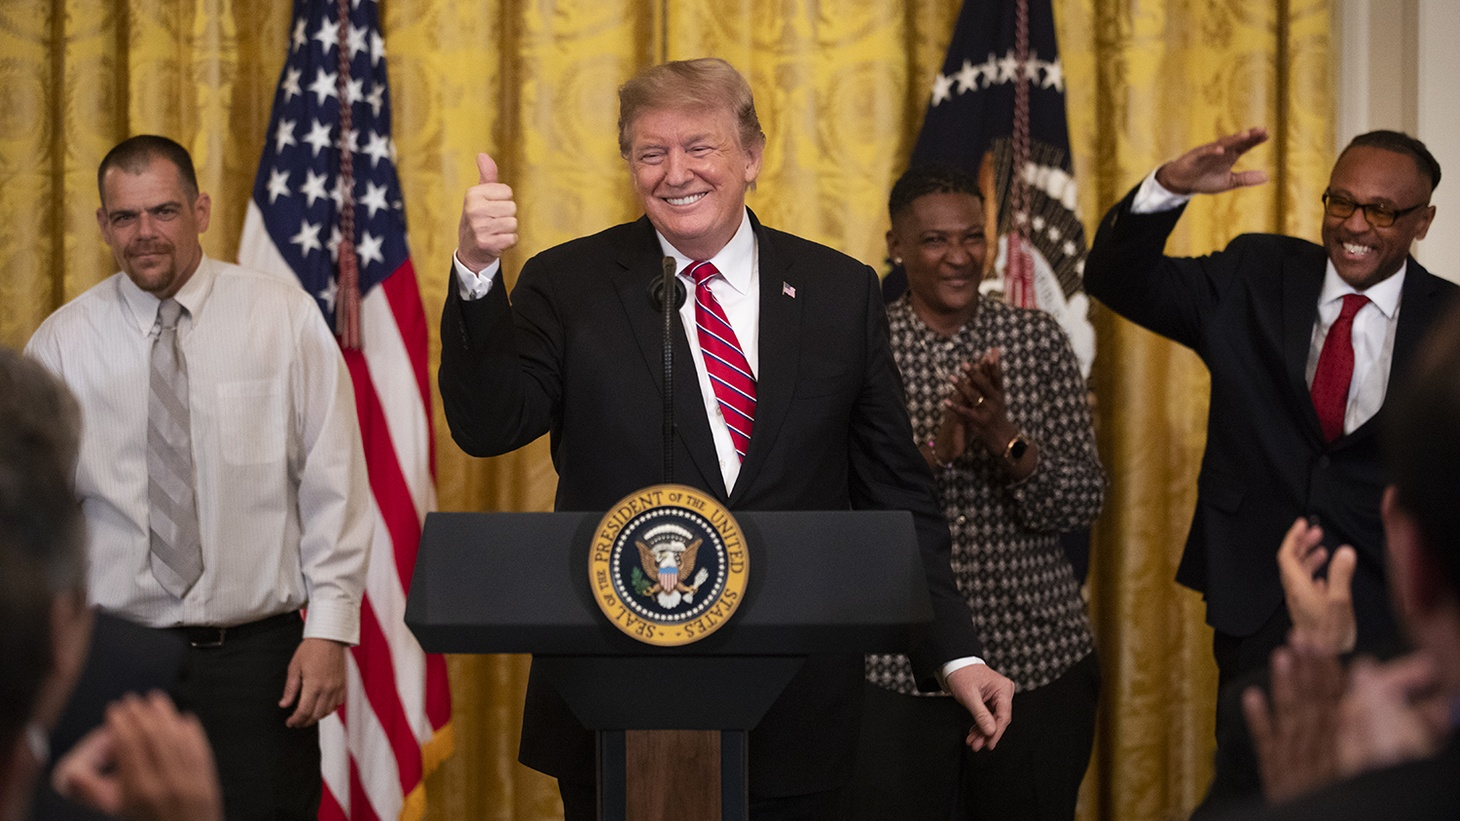 President Donald J. Trump addresses his remarks Monday, April 1, 2019, at the 2019 Prison Reform Summit and First Step Celebration in the East Room of the White House, urging employers to institute second chance hiring practices.